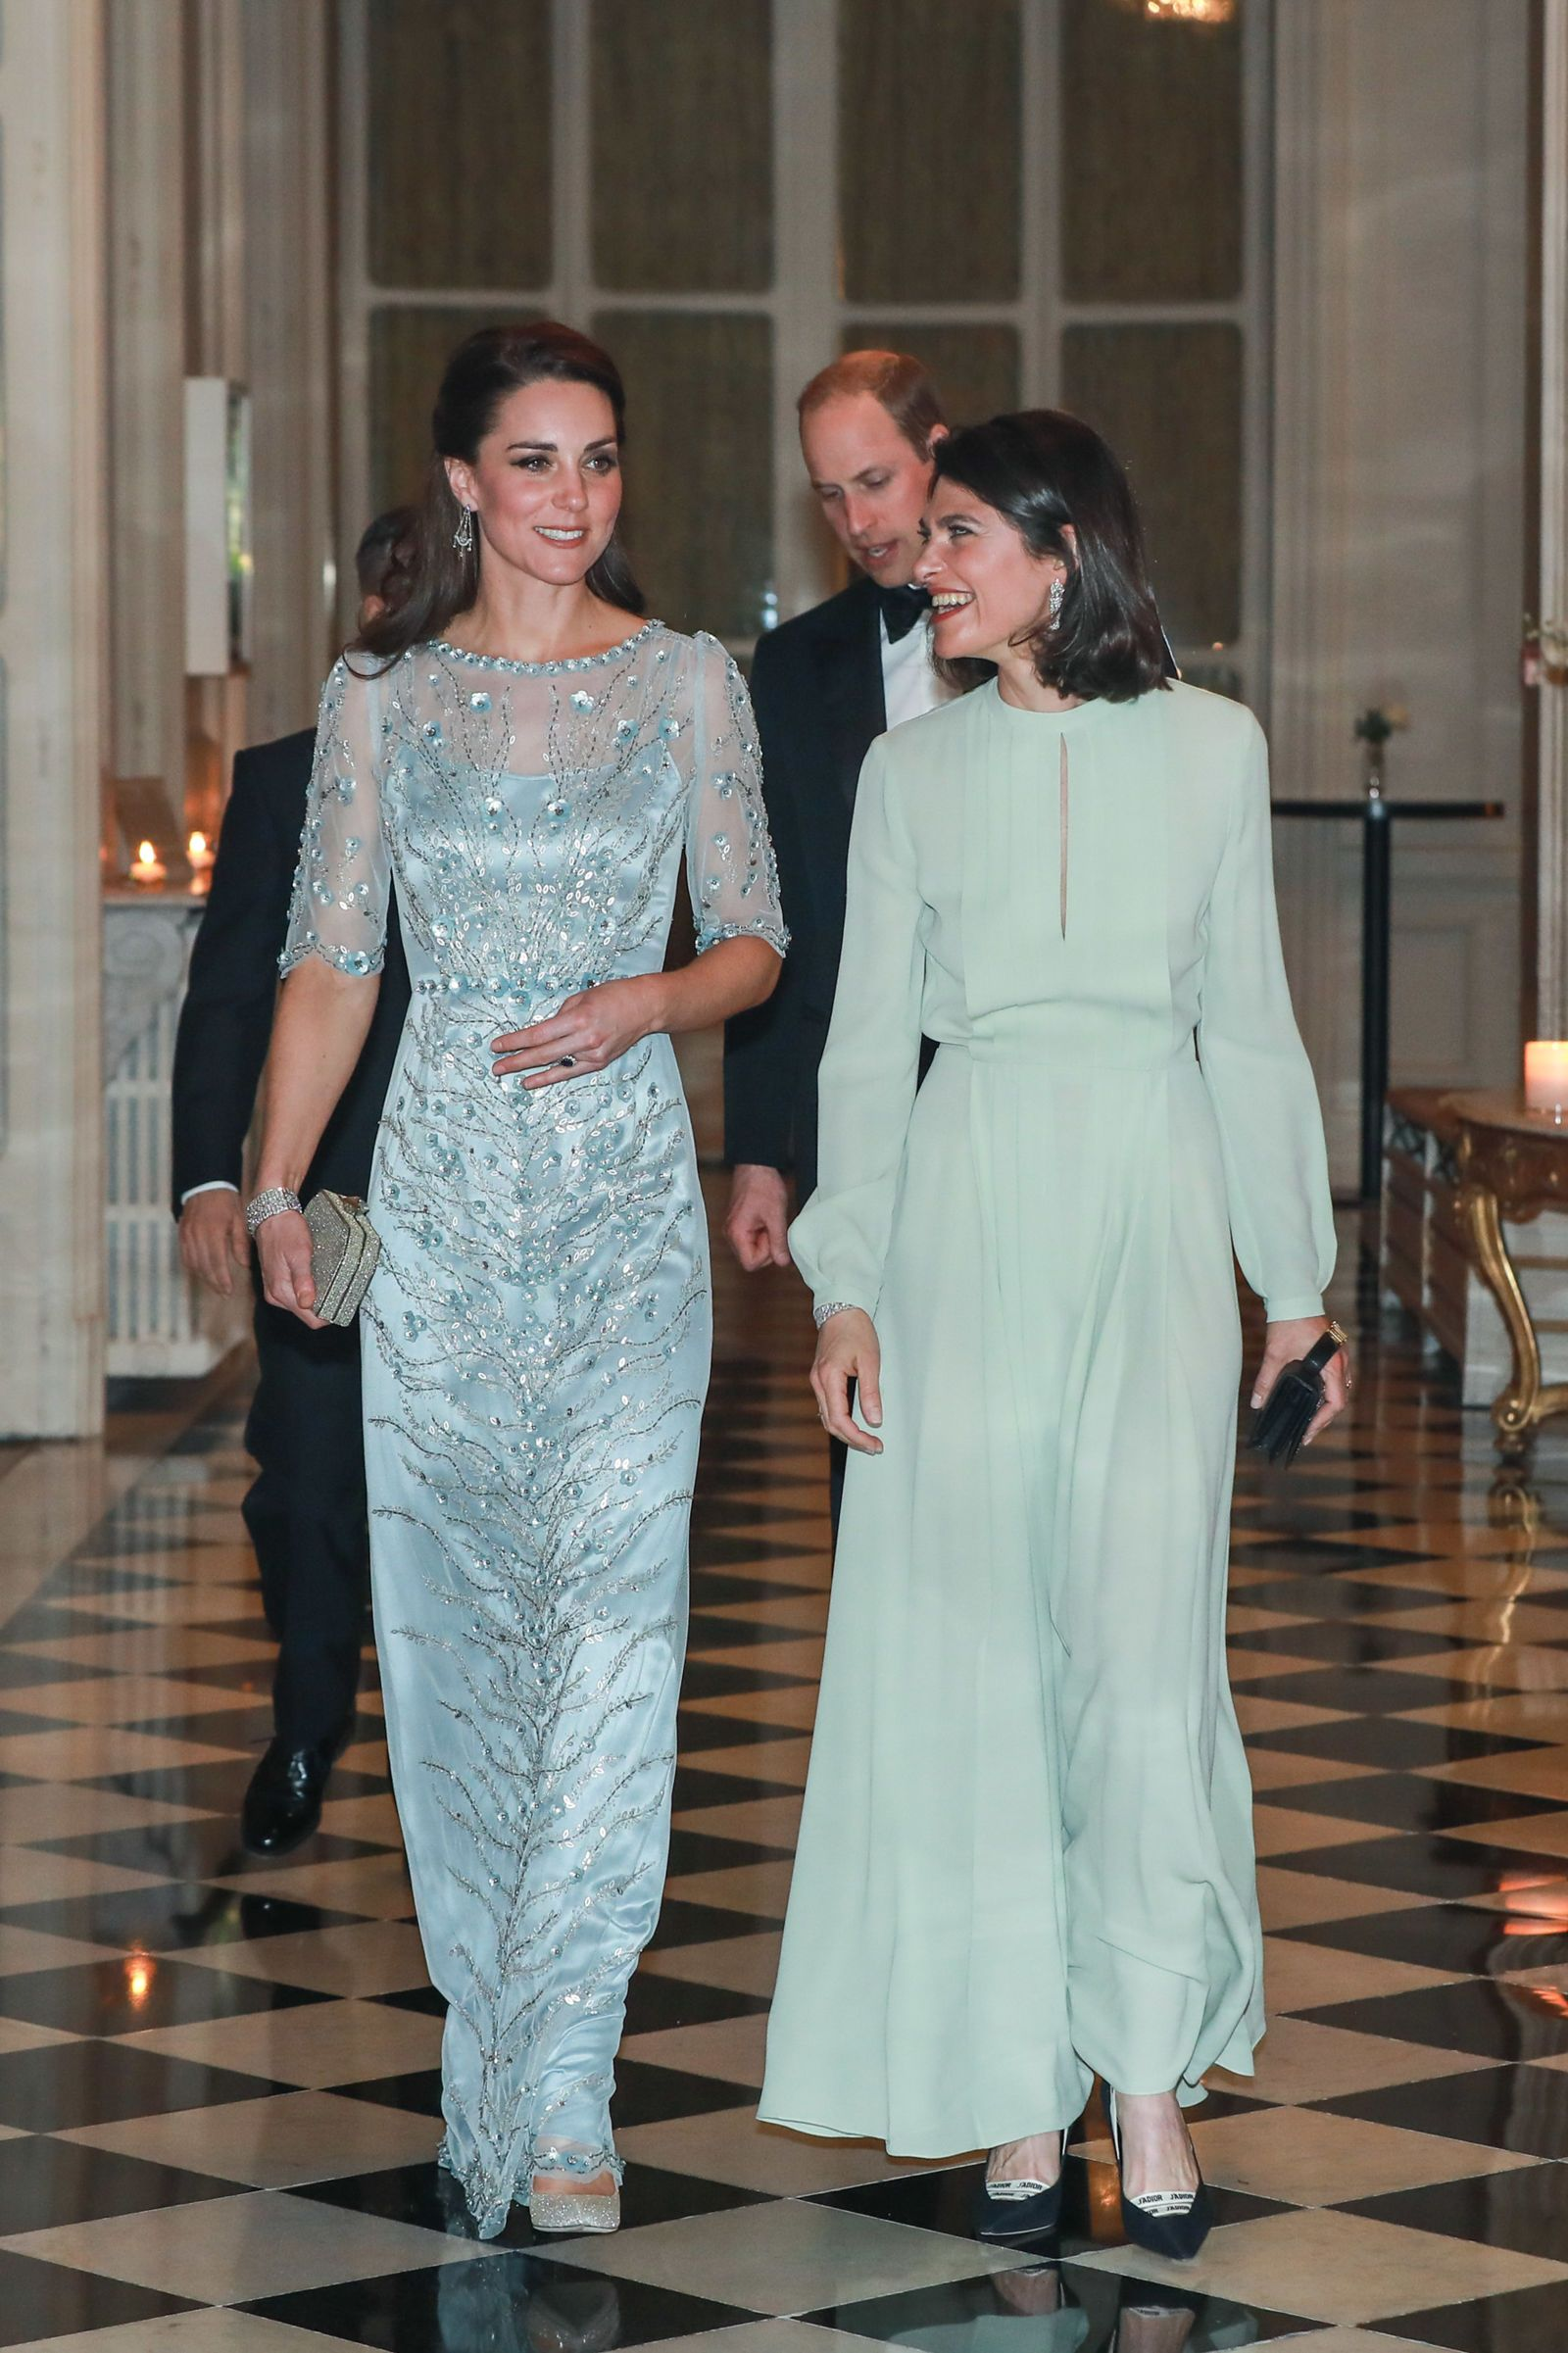 Kate Middleton Is Looking Mint In A Mint Green Jenny Packham Coat ...